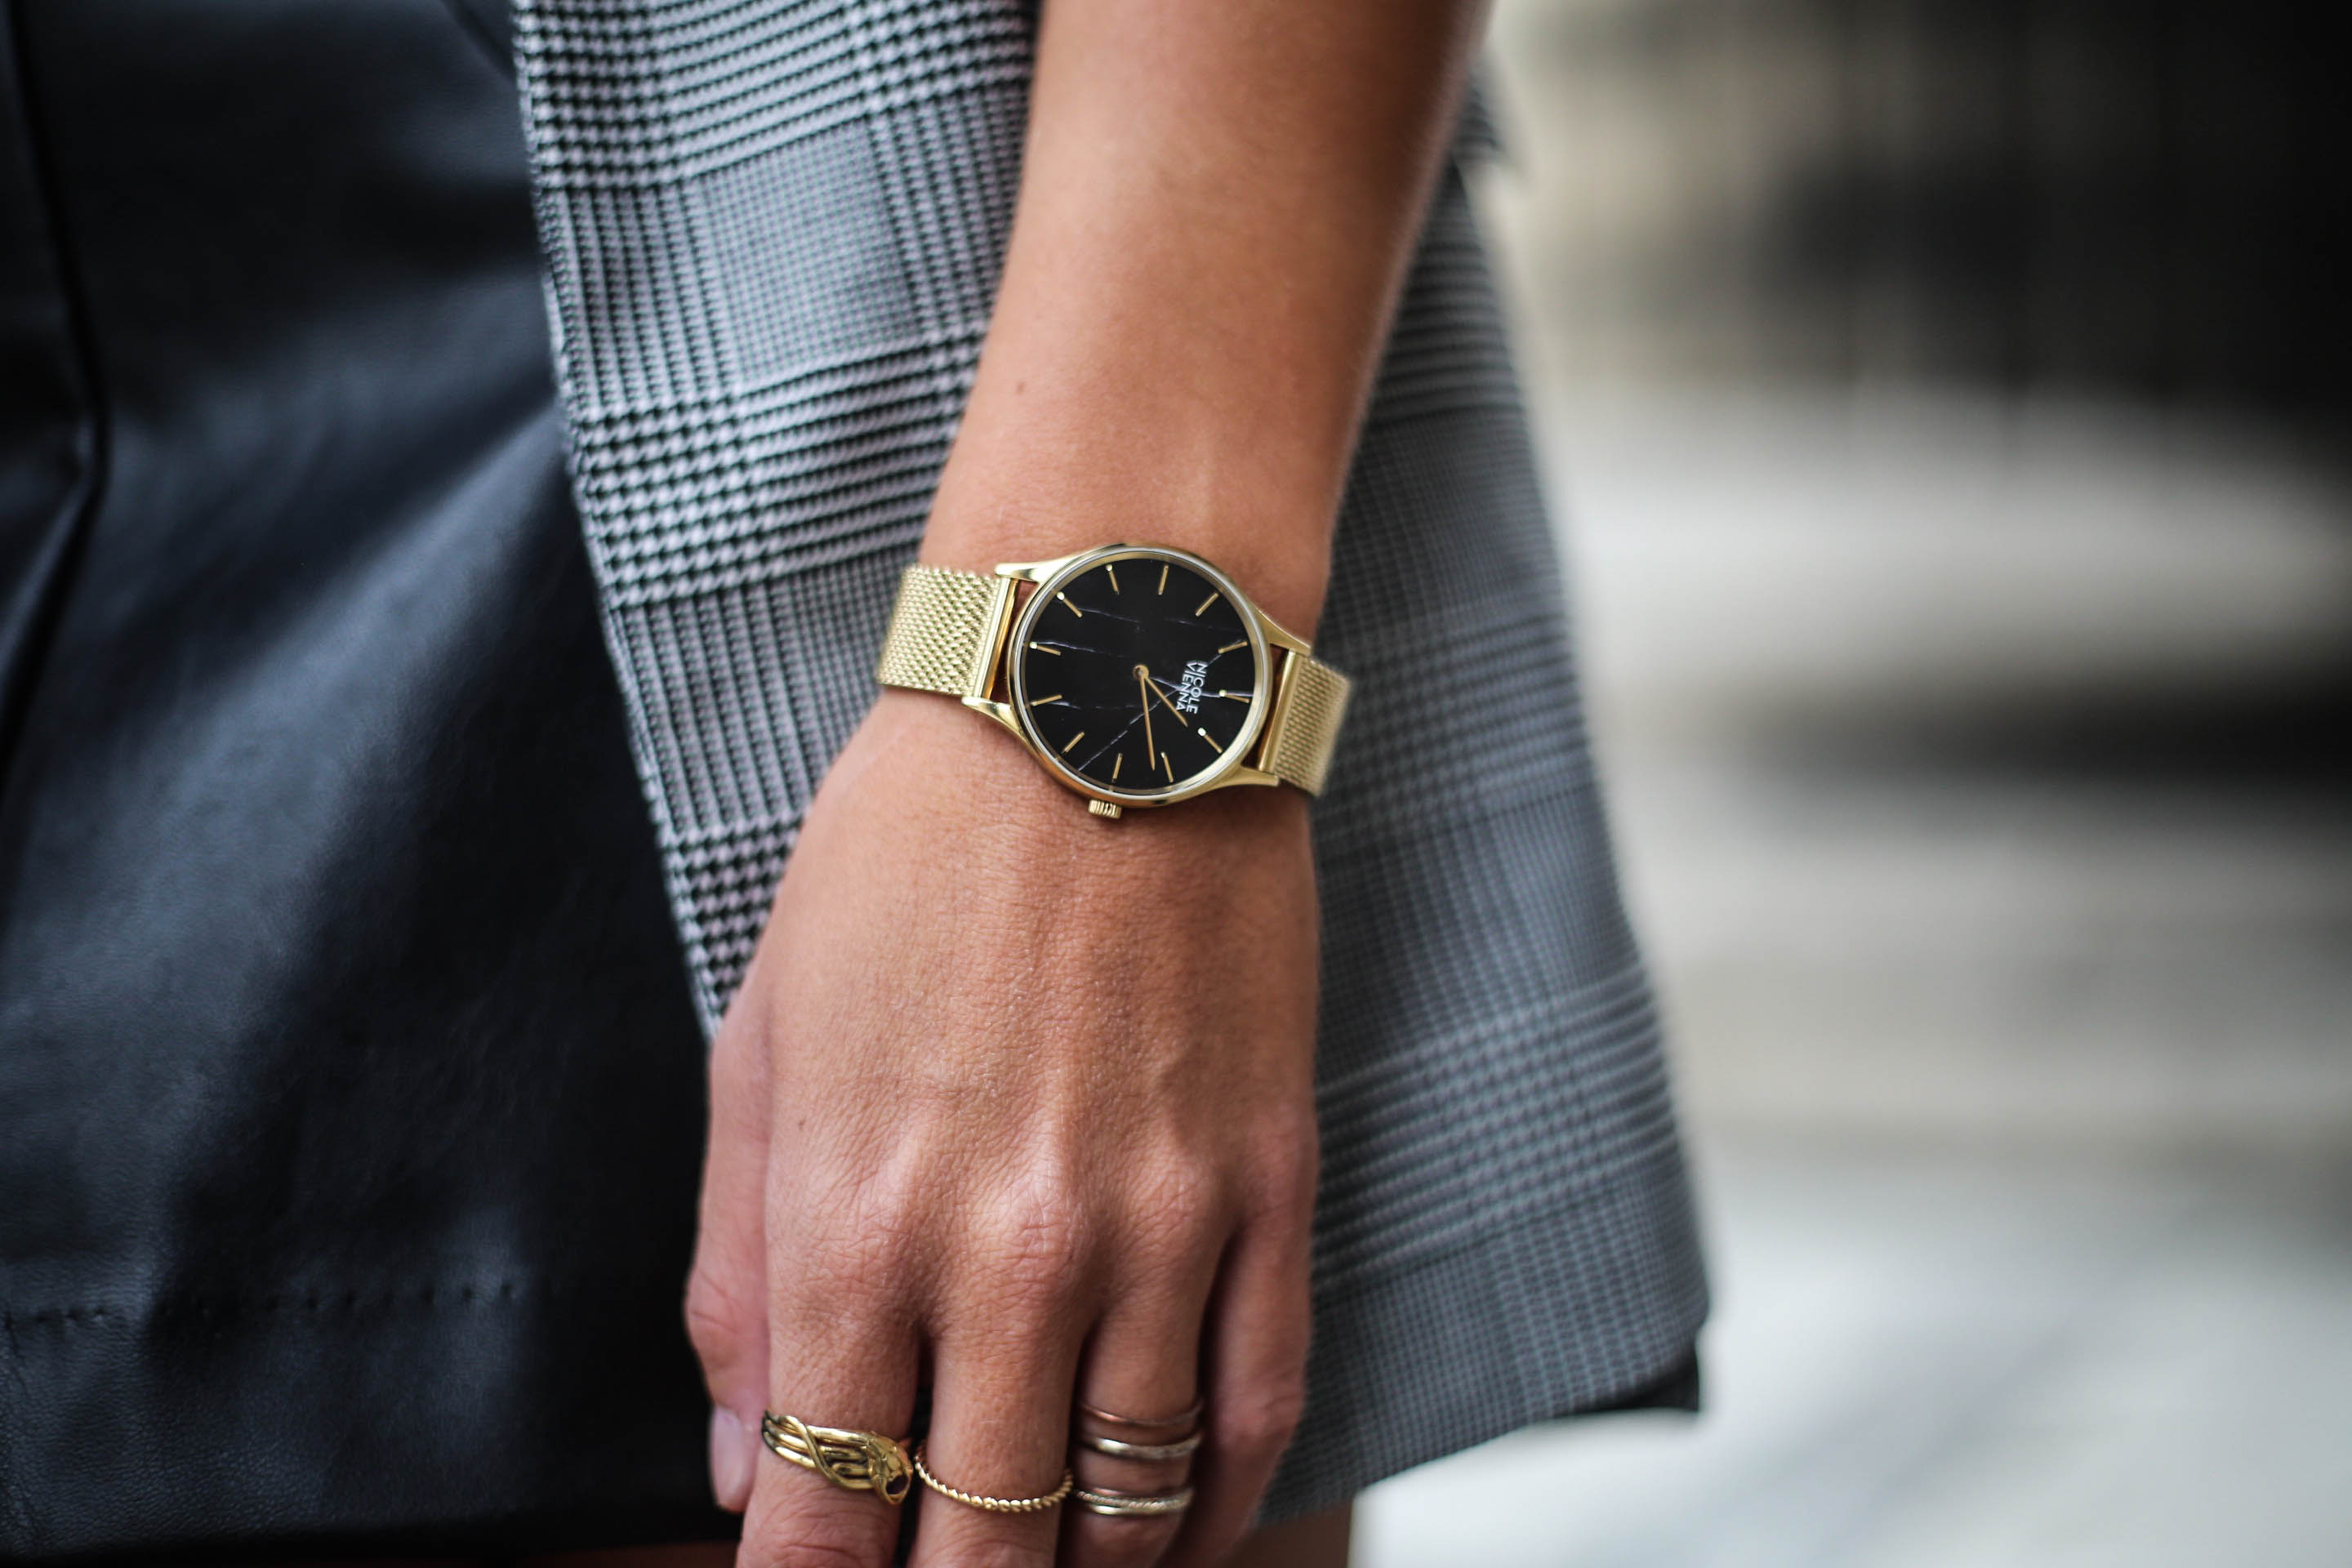 montre doree tendance blog mode